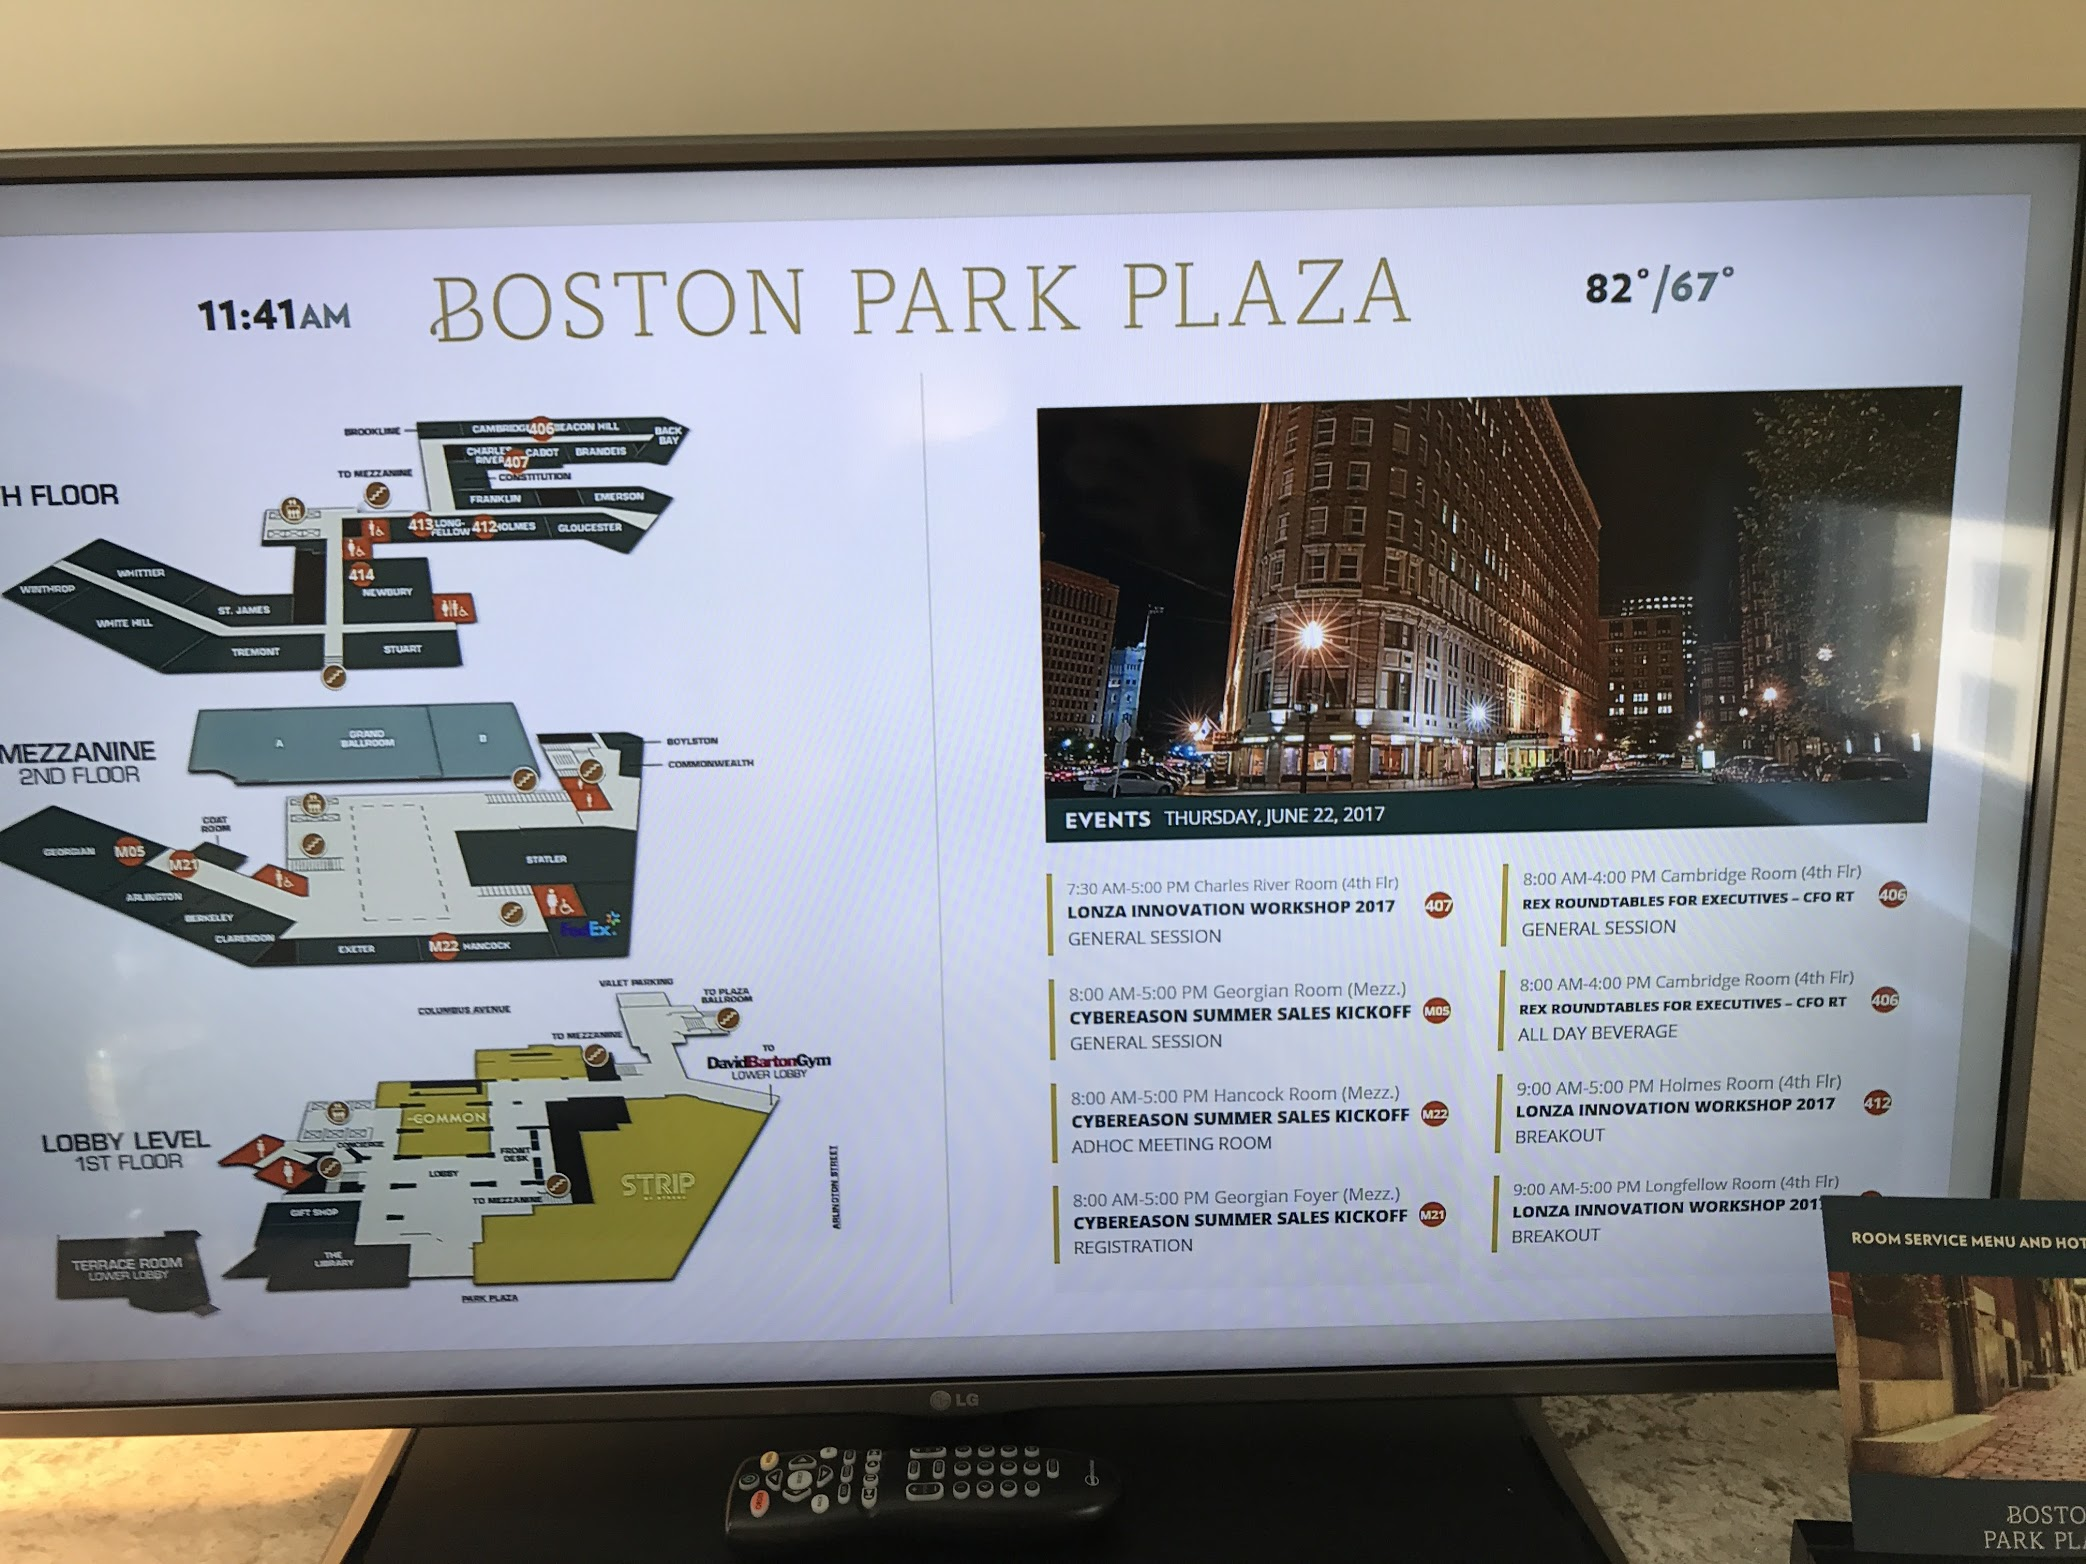 Boston Park Plaza Tv Screens.jpg